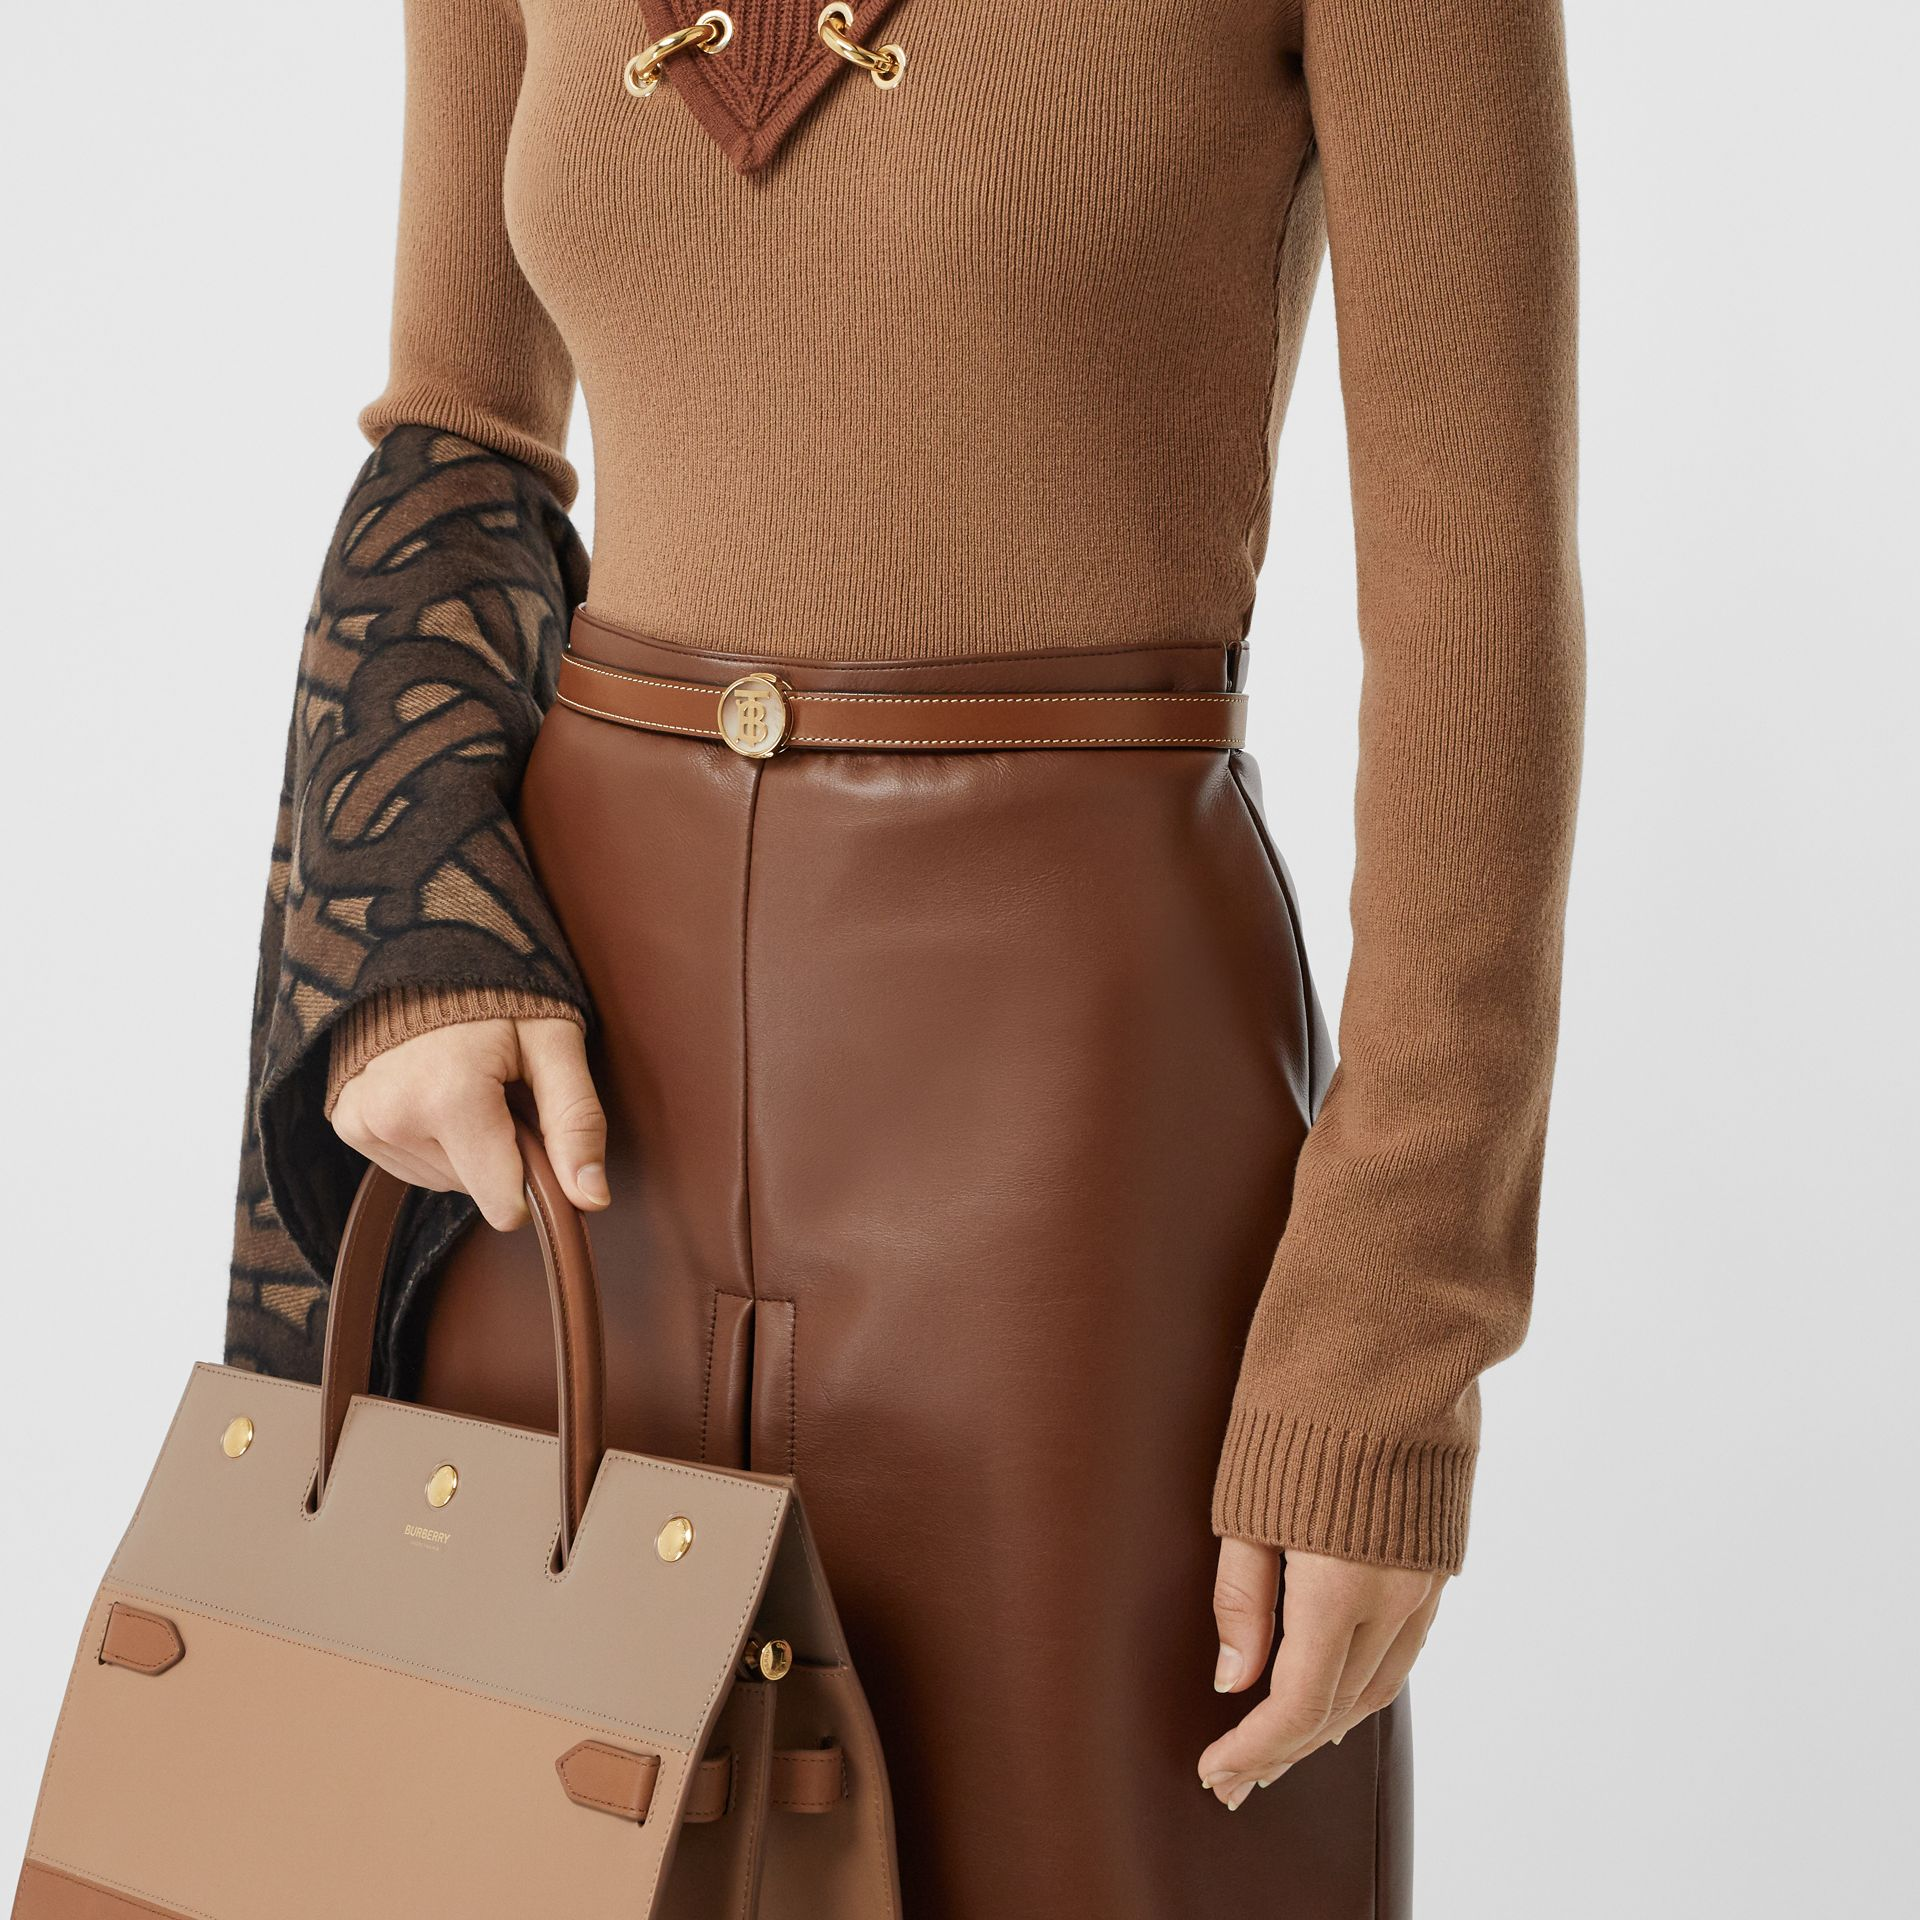 Monogram Motif Leather Belt in Tan - Women | Burberry - gallery image 2